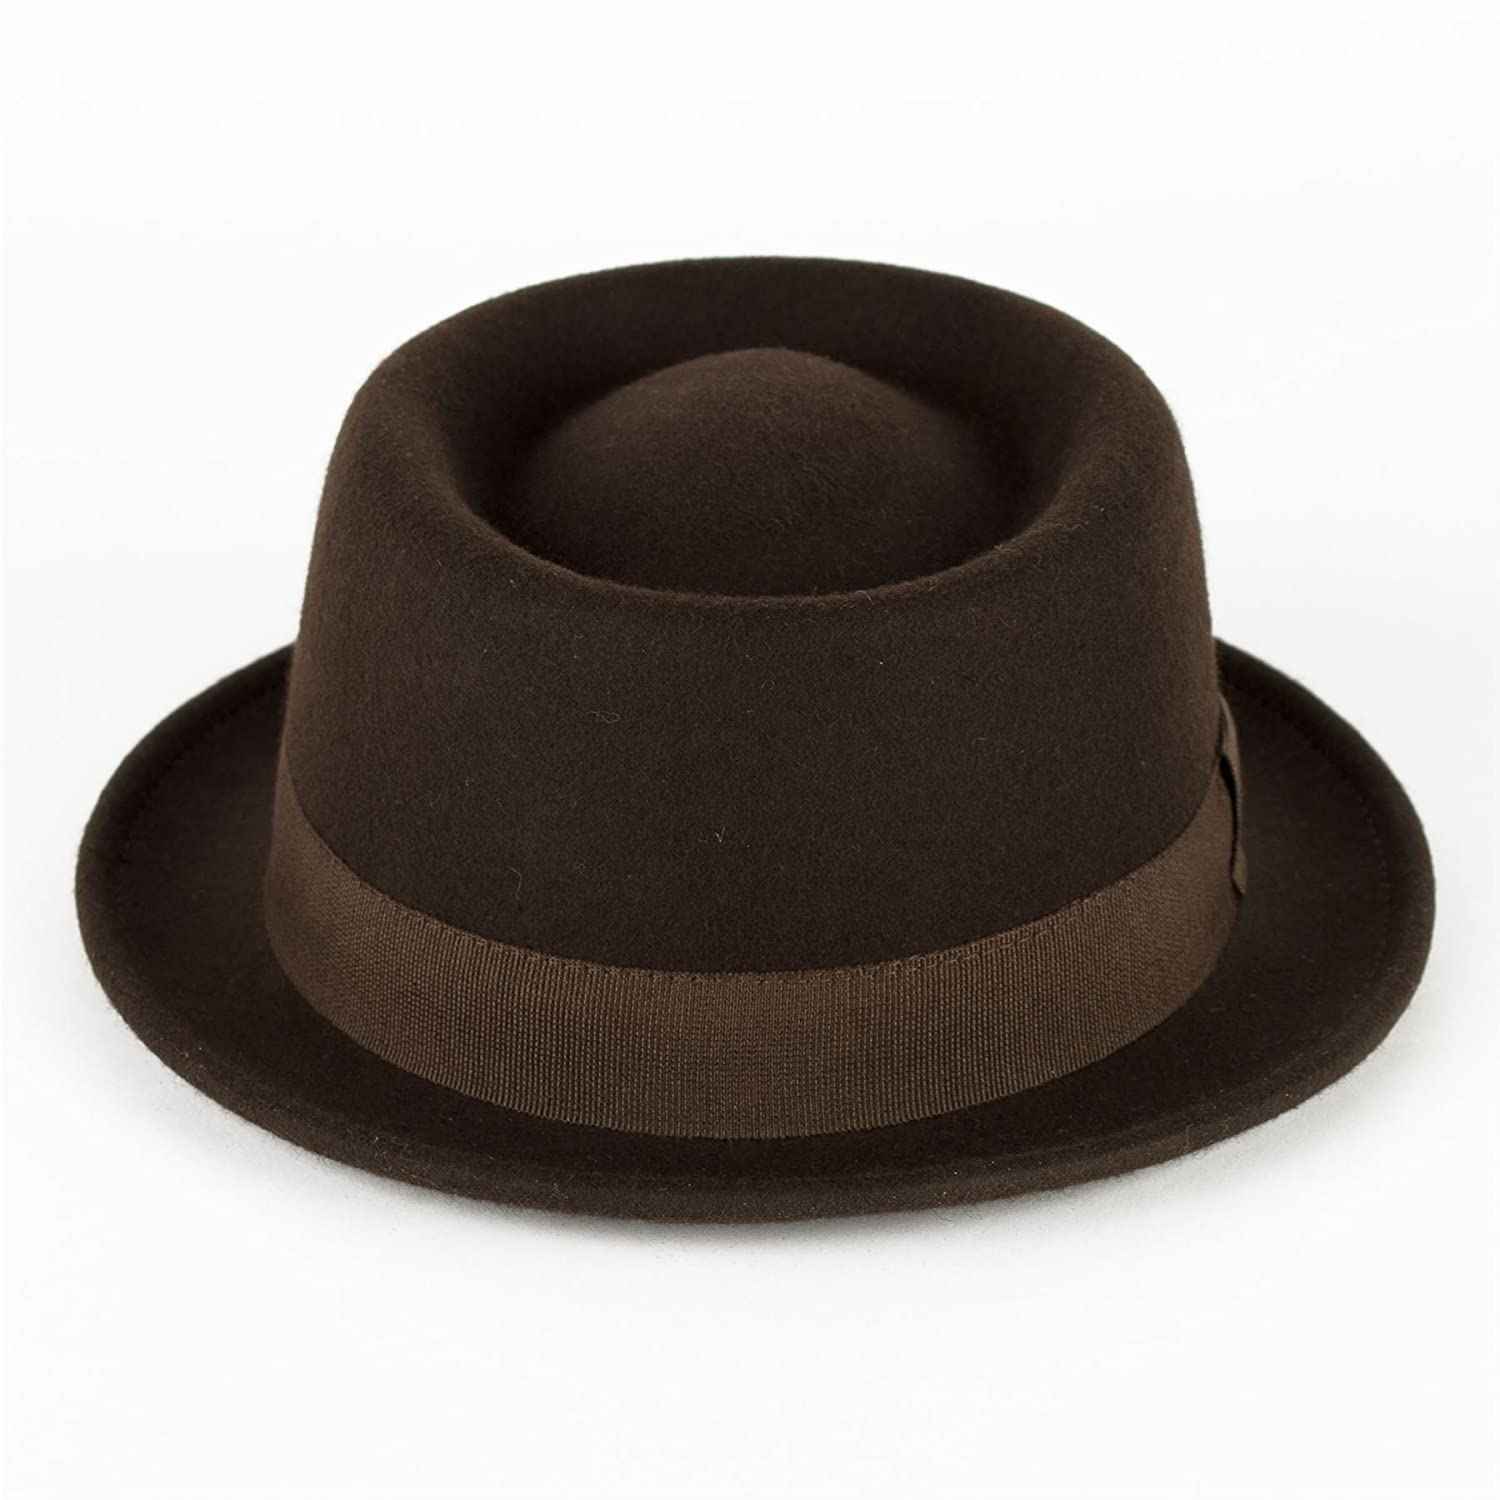 9036fa5a Wool Pork Pie Hat Waterproof & Crushable Handmade in Italy: Amazon.co.uk:  Clothing